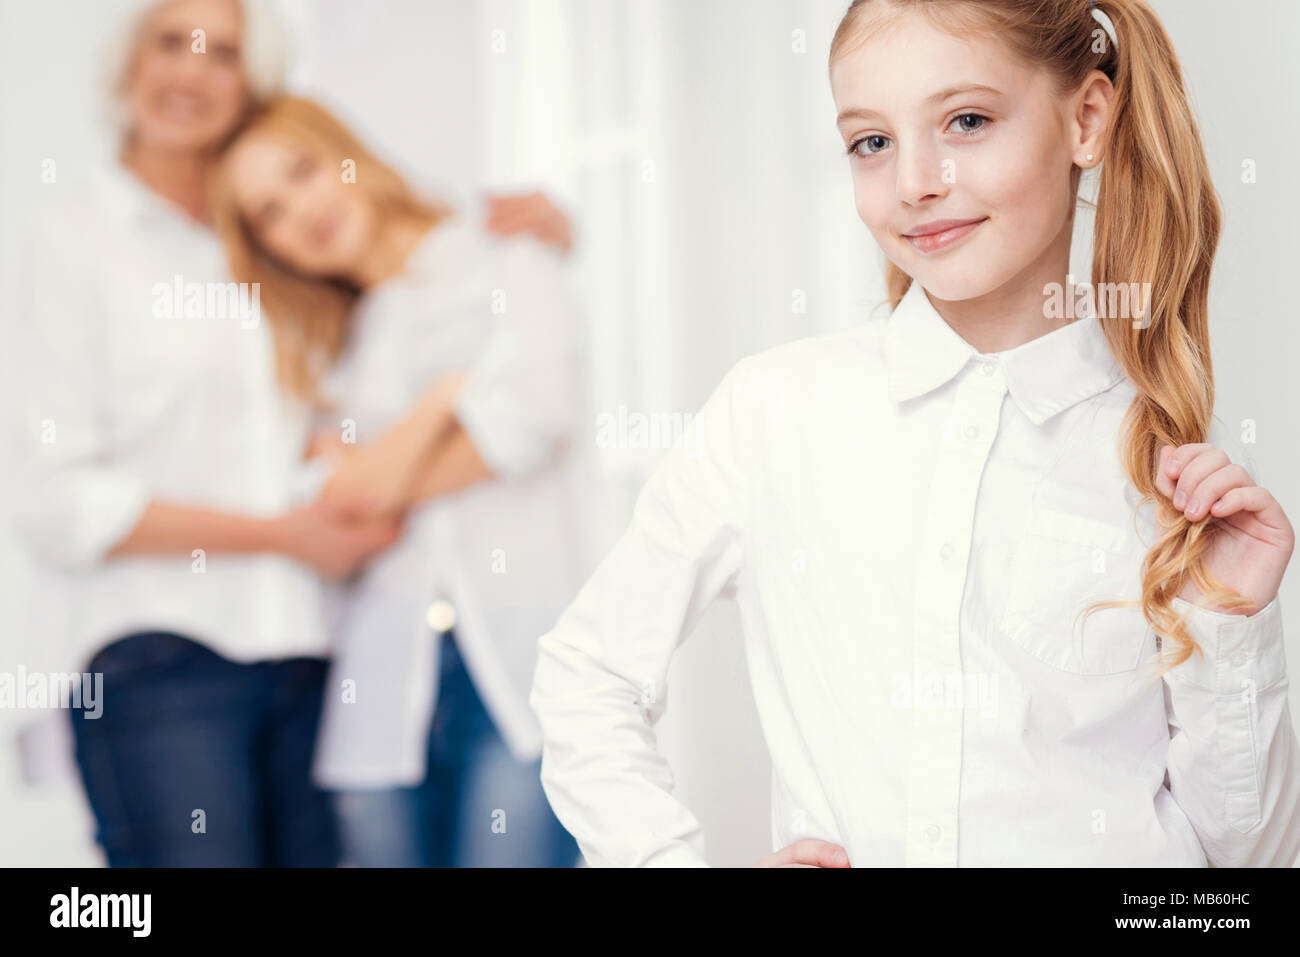 Adorable girl with ponytails smiling while family embracing in background - Stock Image